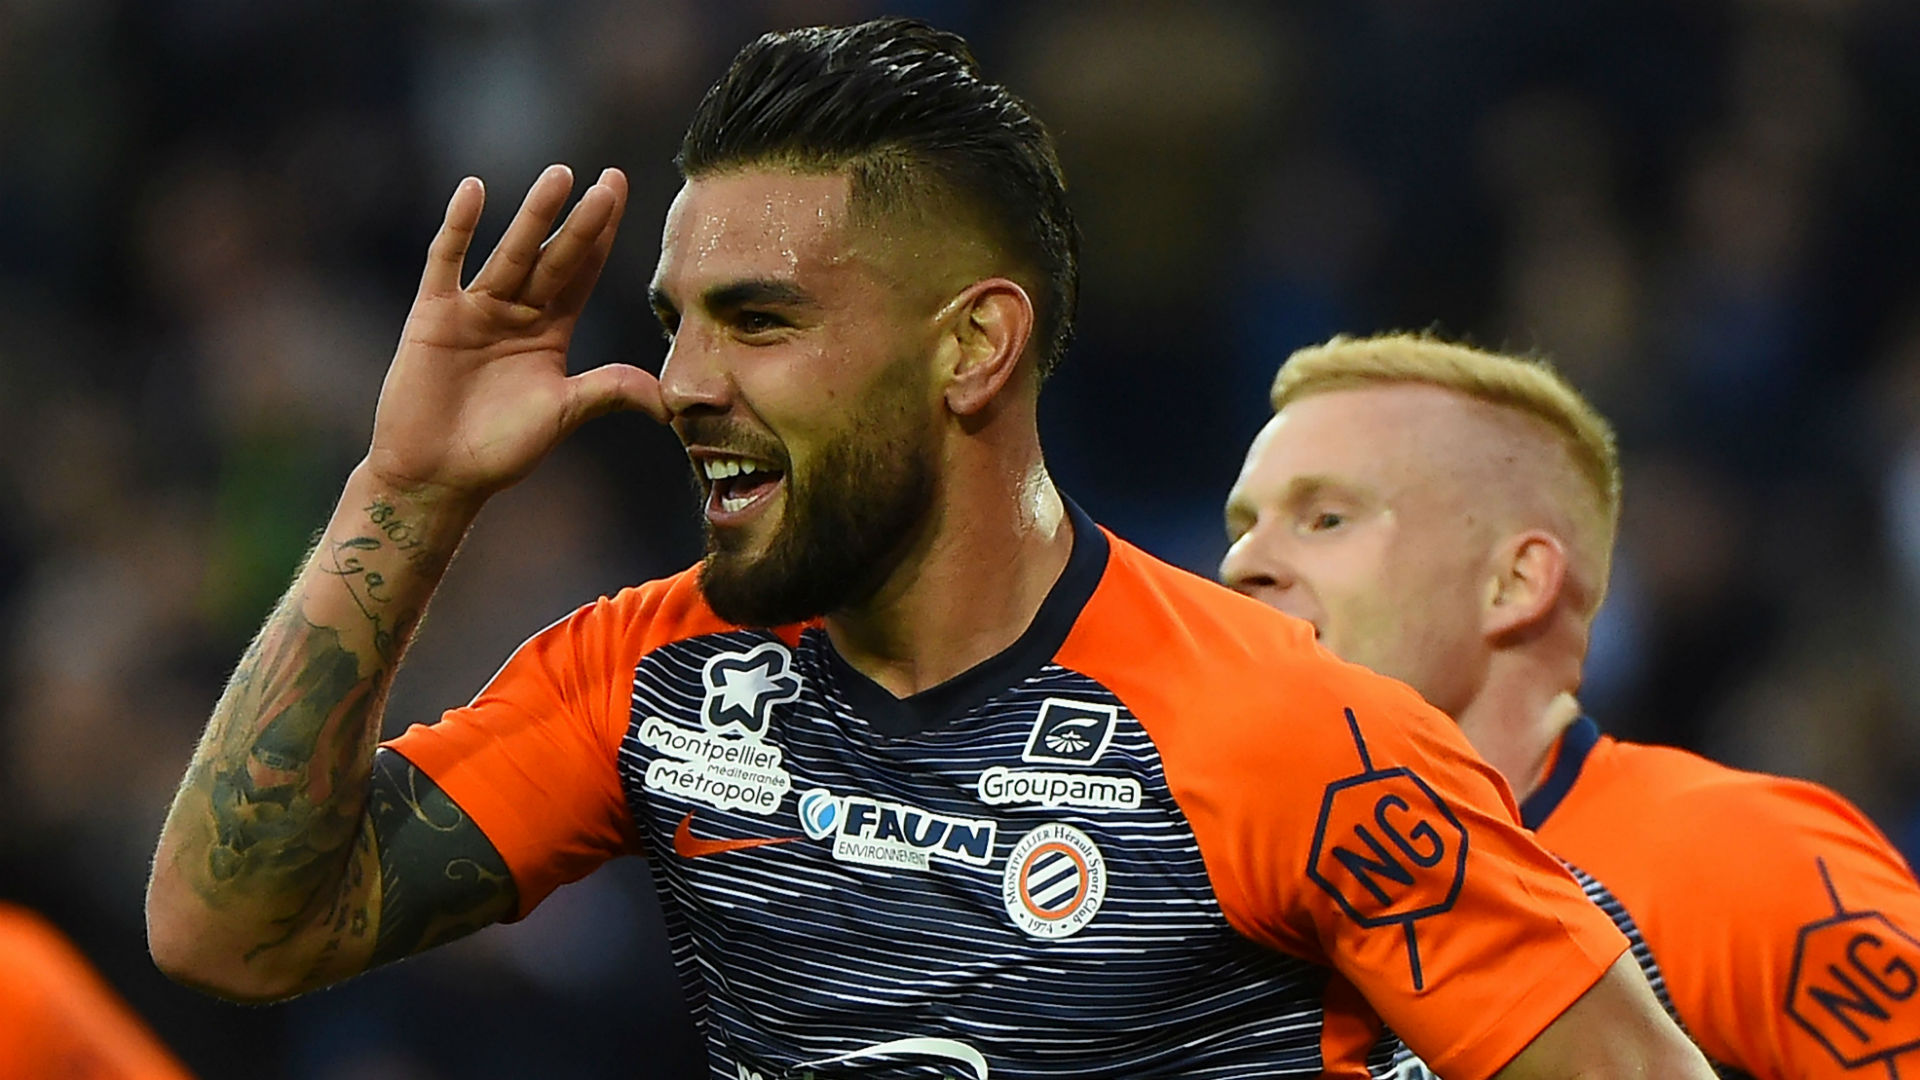 Not Mbappe, Montpellier's Delort remains fastest player in Ligue 1